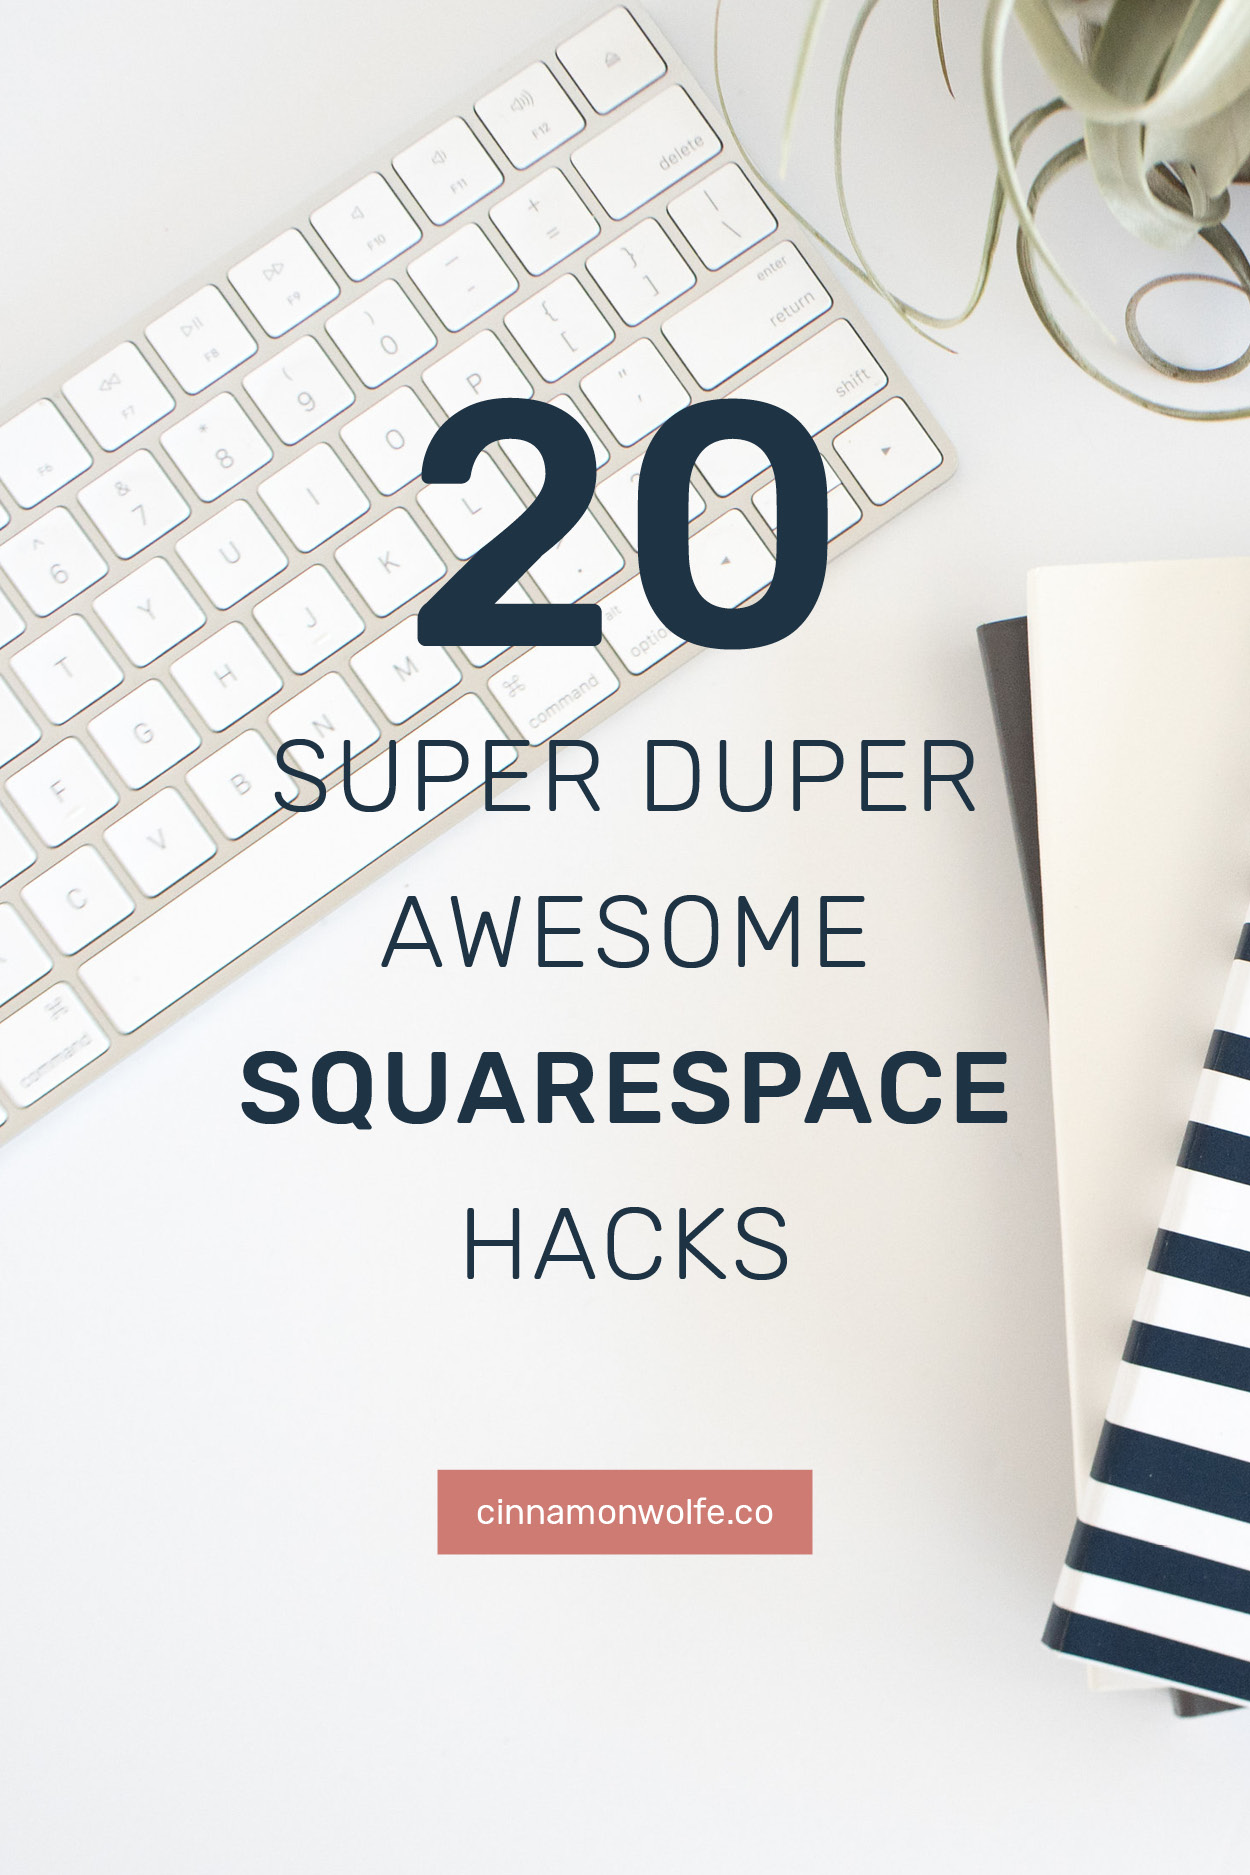 20 Super Duper Awesome Squarespace Hacks Cinnamonwolfe Co